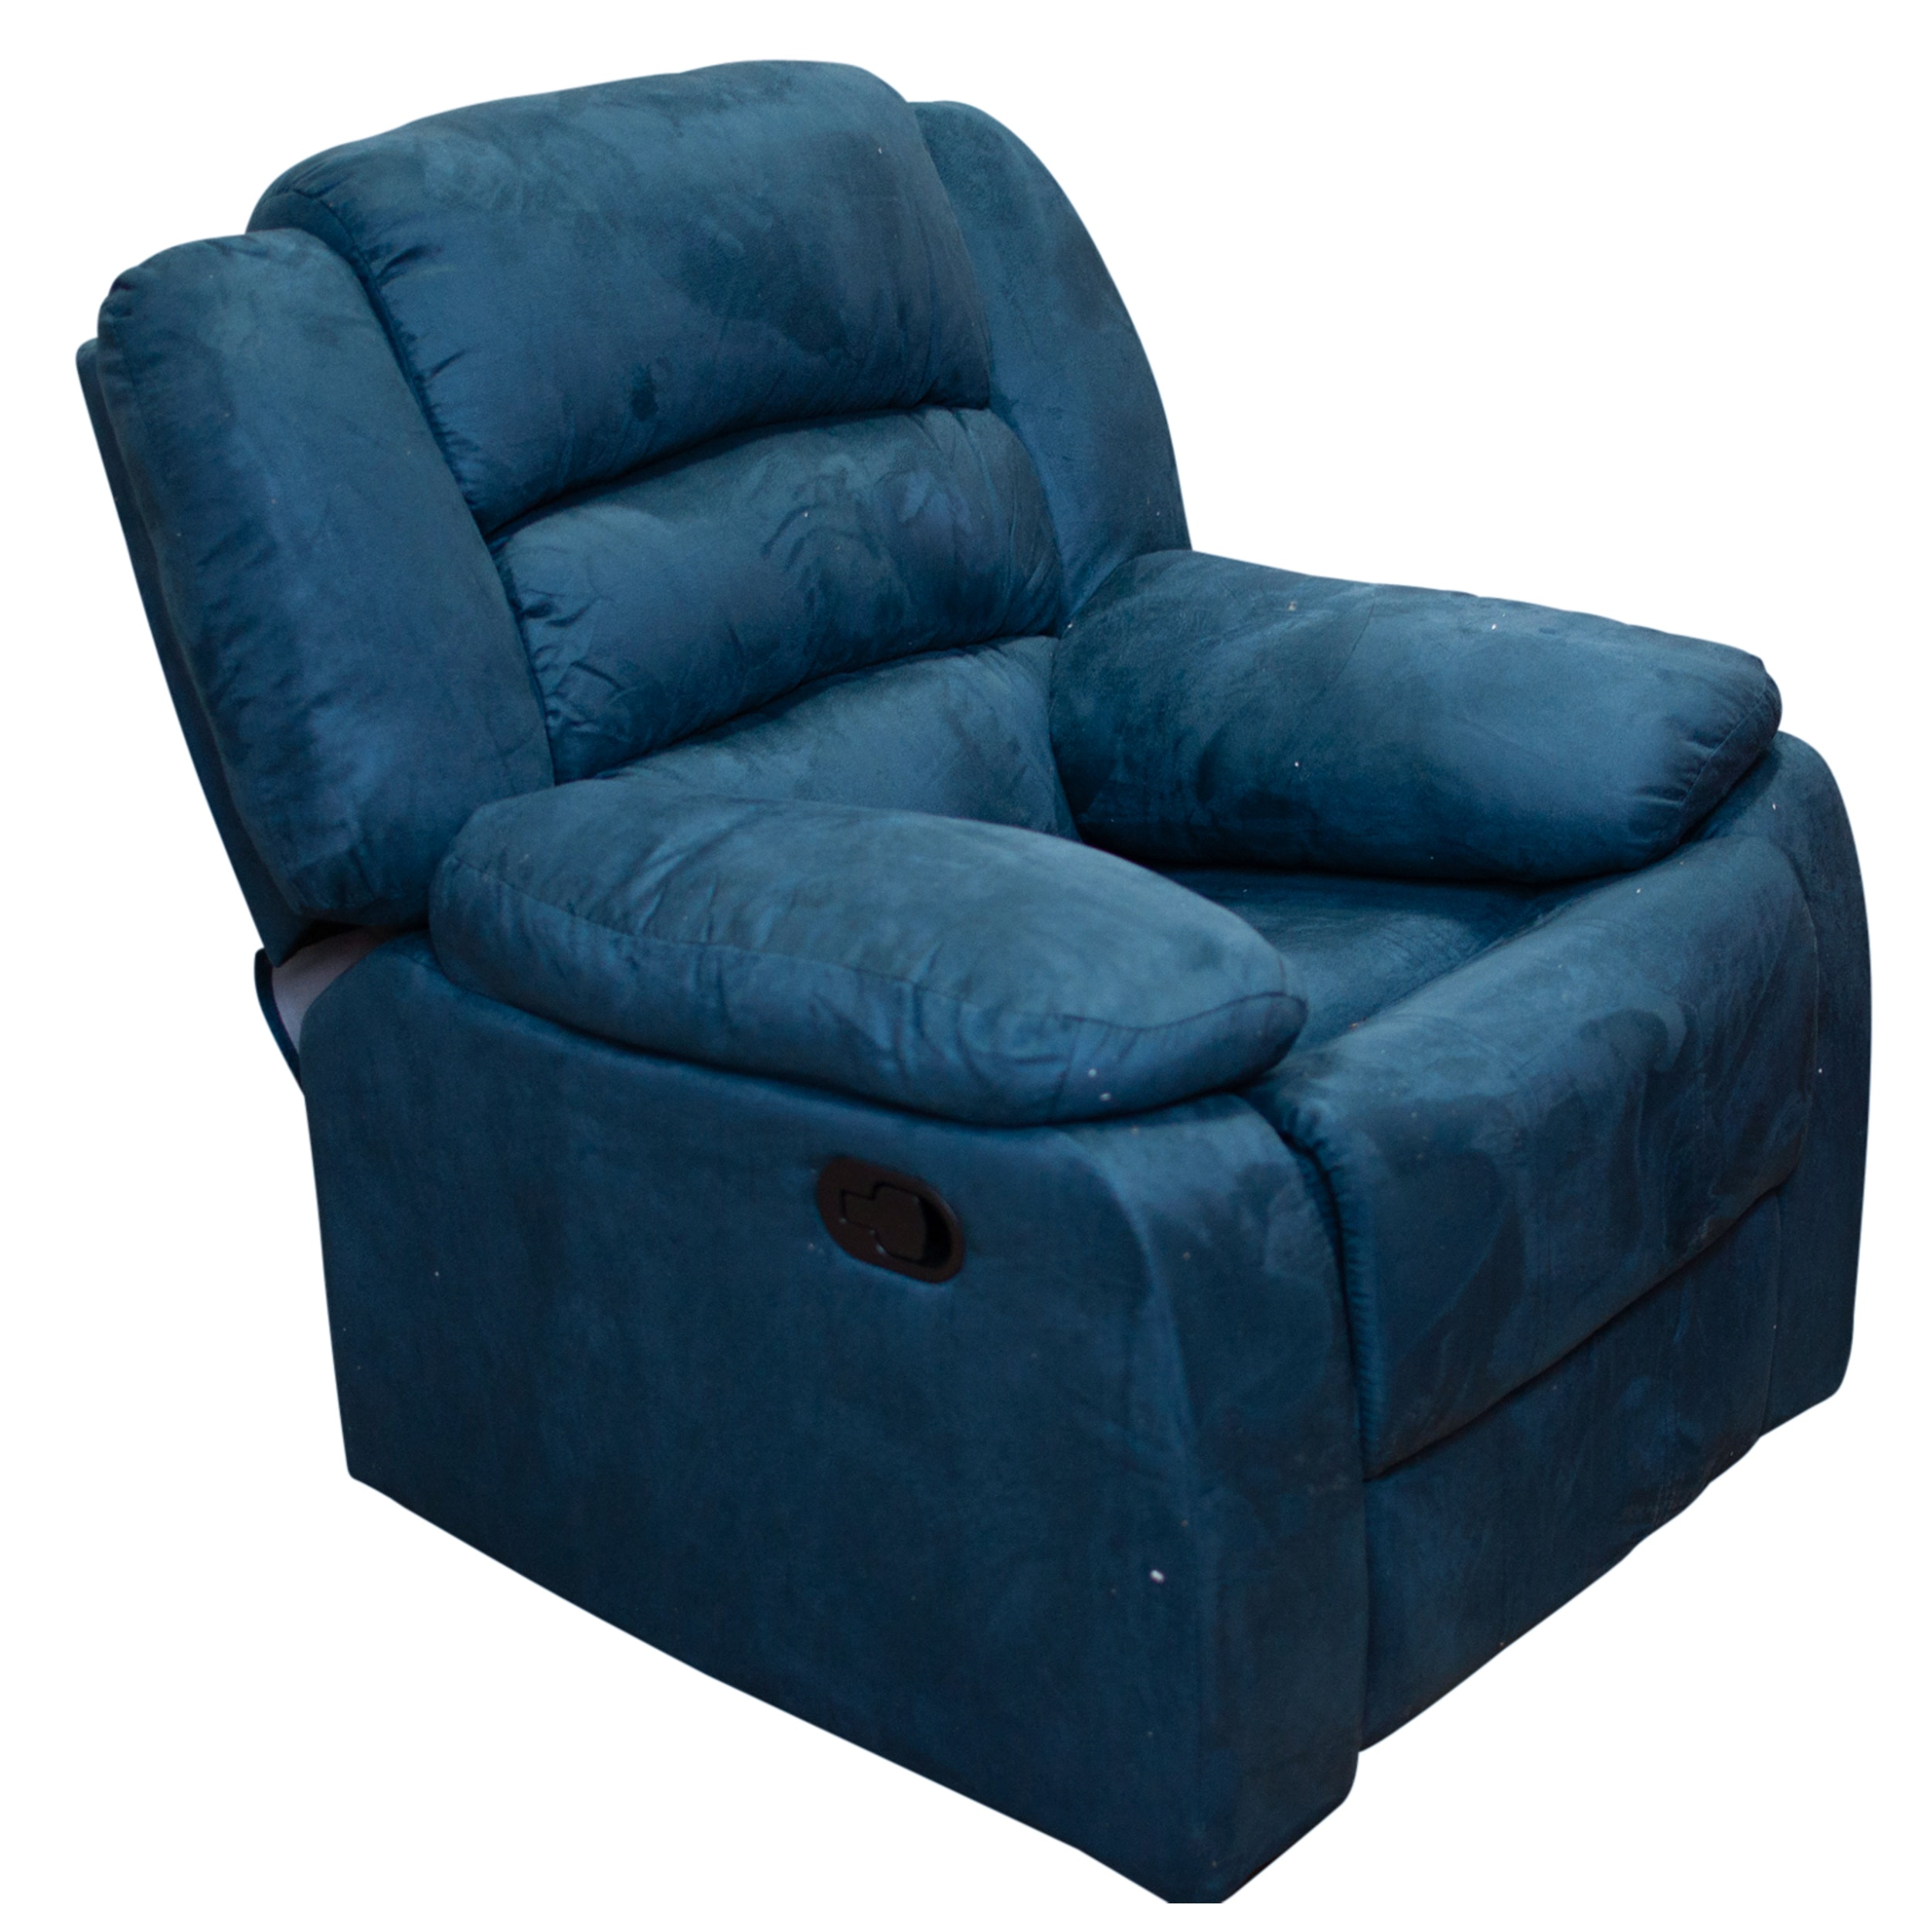 Blue Upholstered Reclining Club Chair, Contemporary